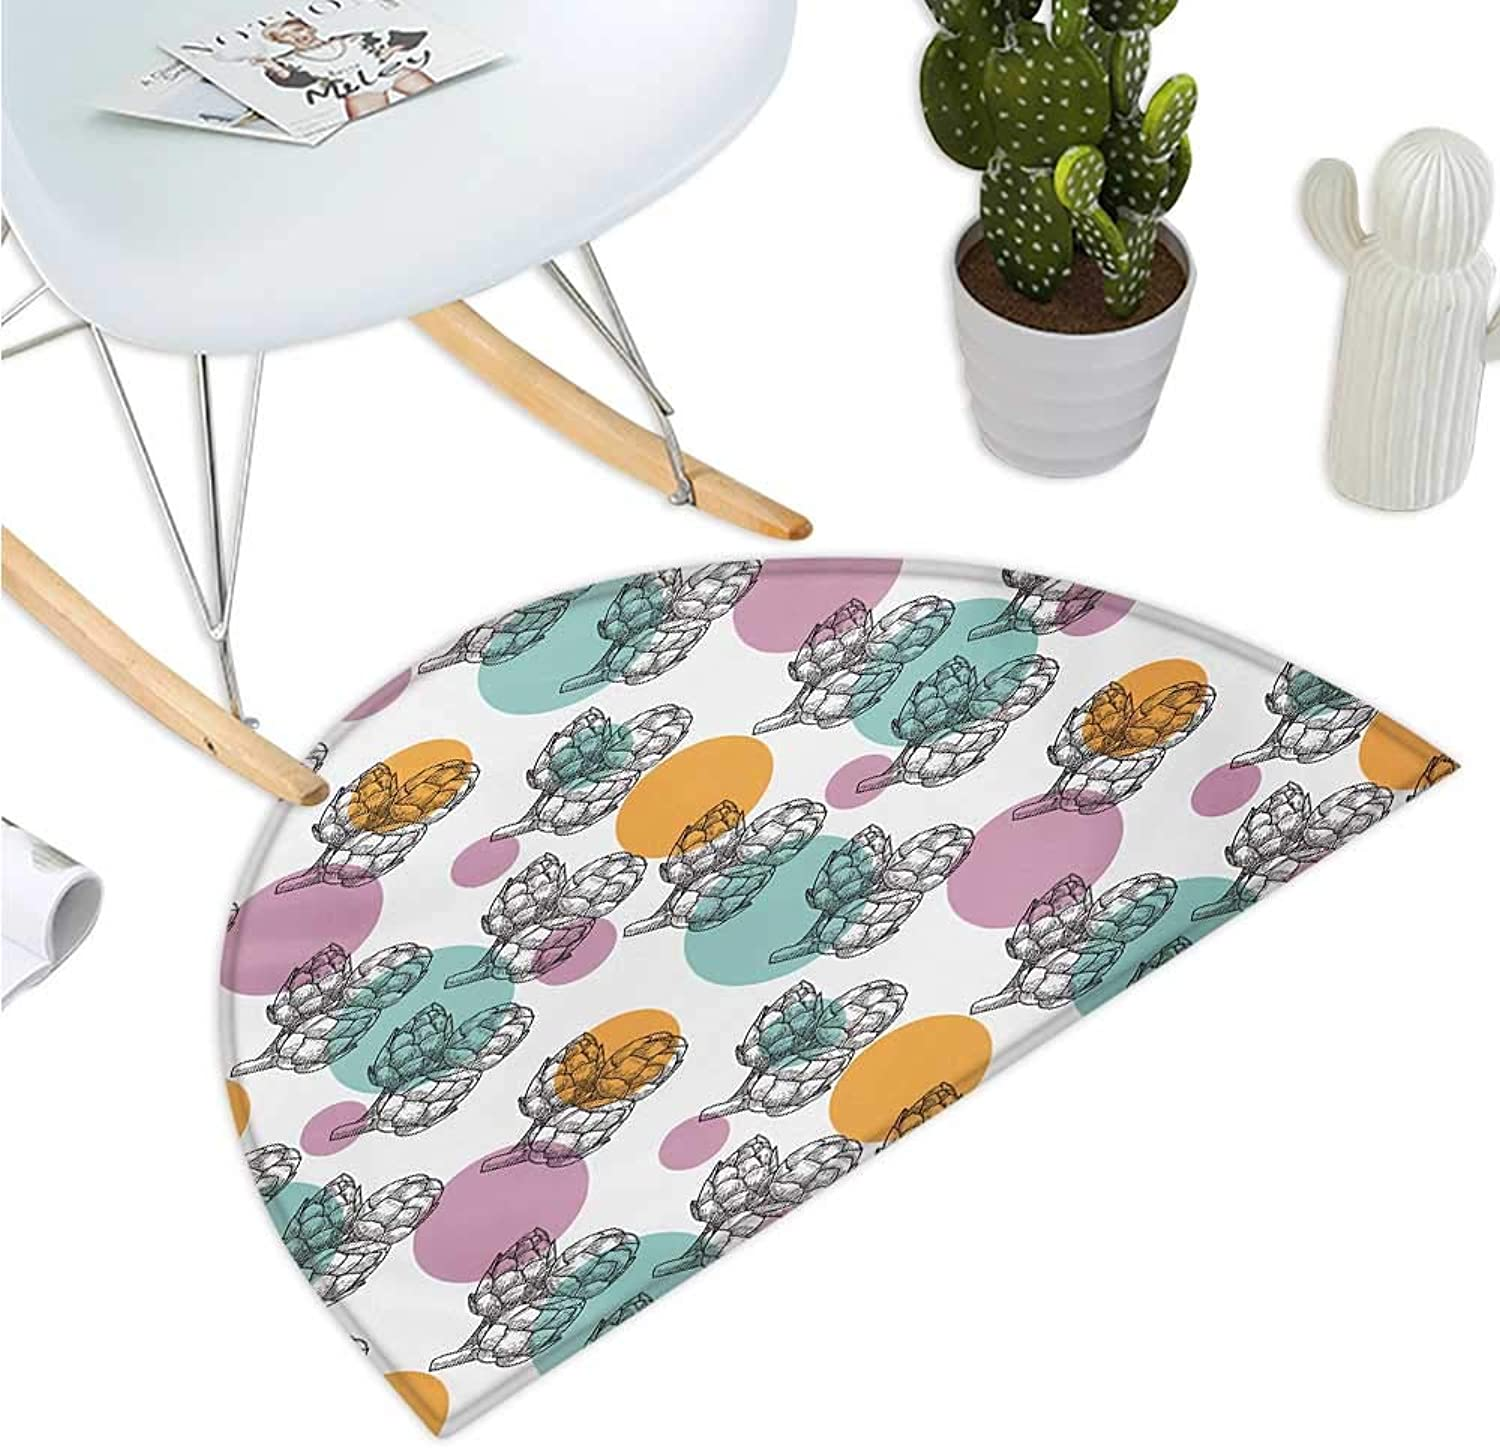 Artichoke Semicircular Cushion Vintage Inspired Dotted Backdrop with Black and White Artichokes Entry Door Mat H 35.4  xD 53.1  purplec Apricot and Turquoise